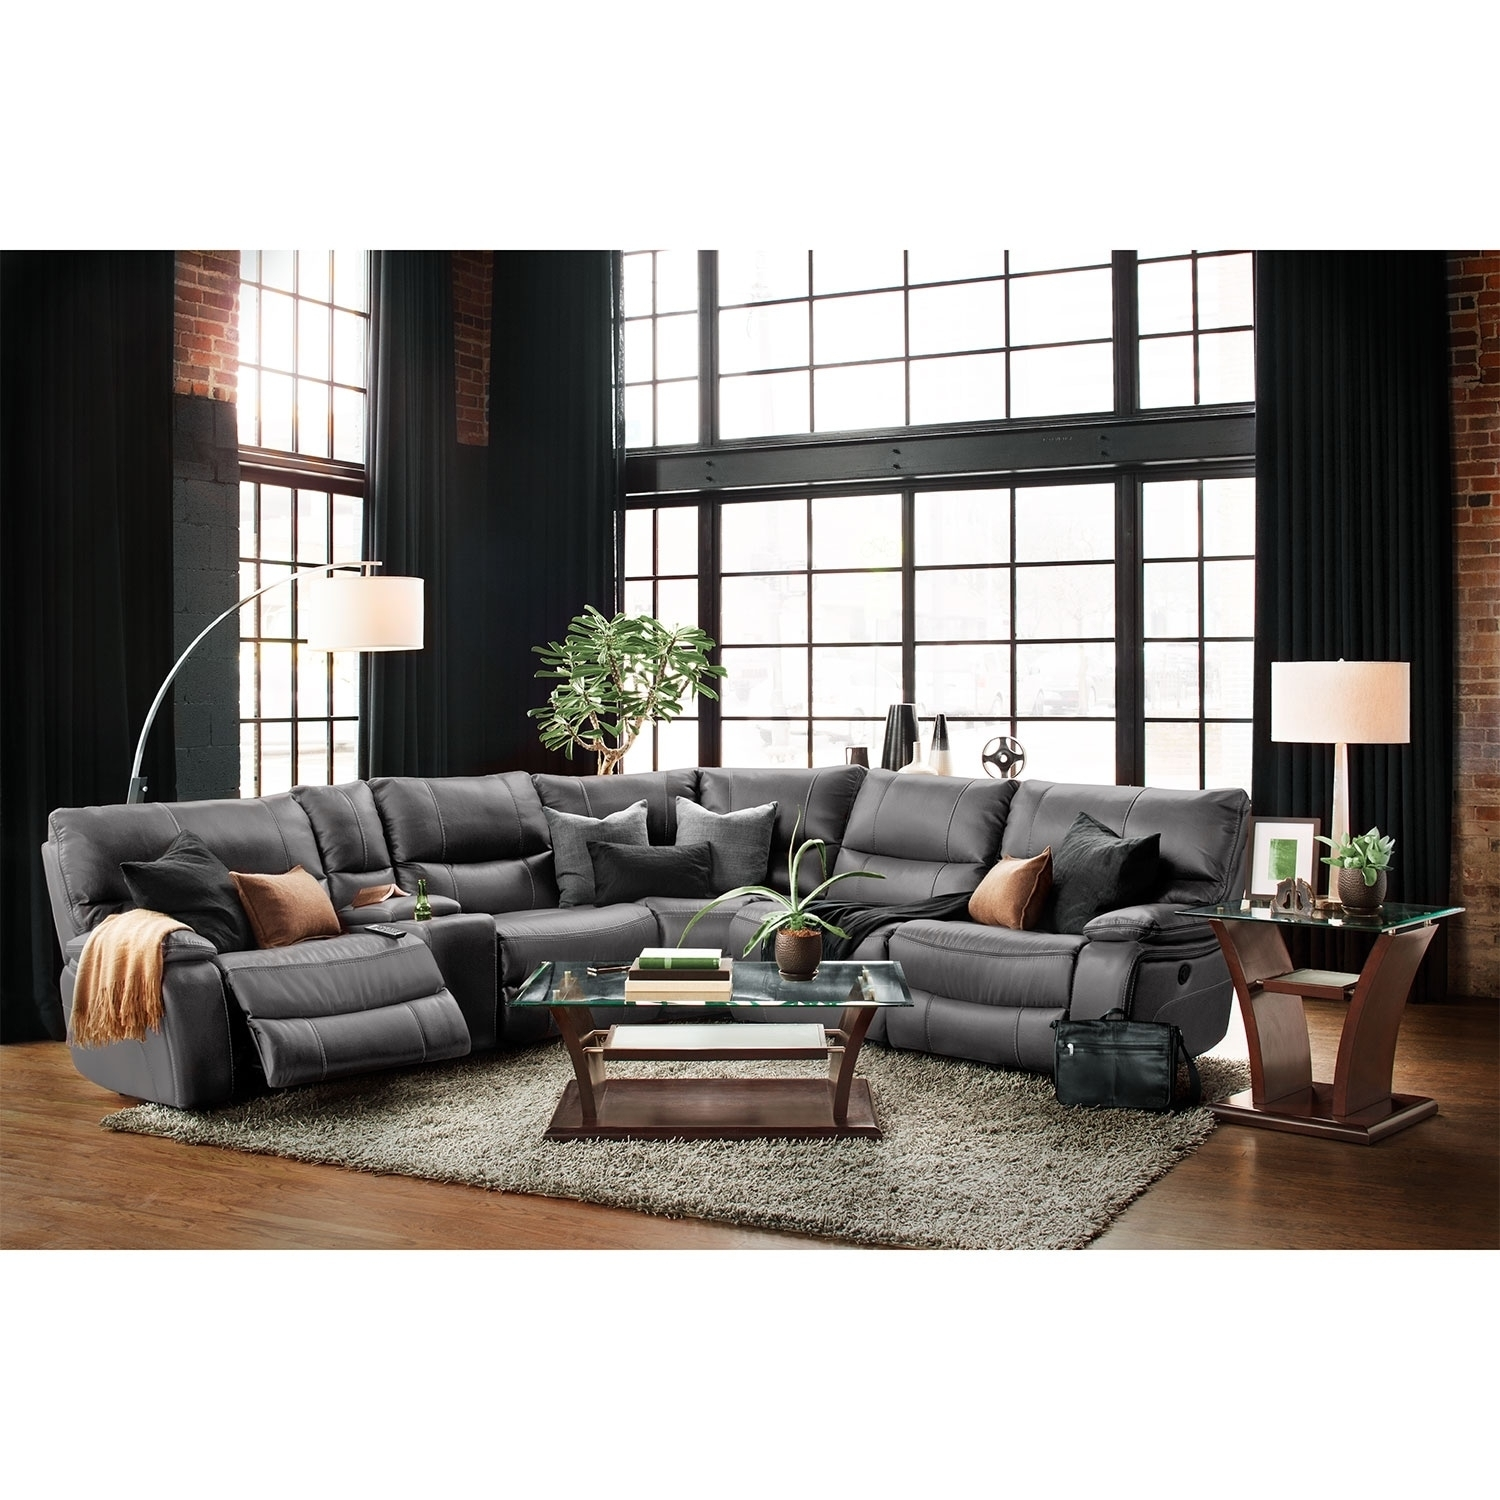 Orlando 6-Piece Power Reclining Sectional With 1 Stationary Chair with regard to Orlando Sectional Sofas (Image 8 of 10)